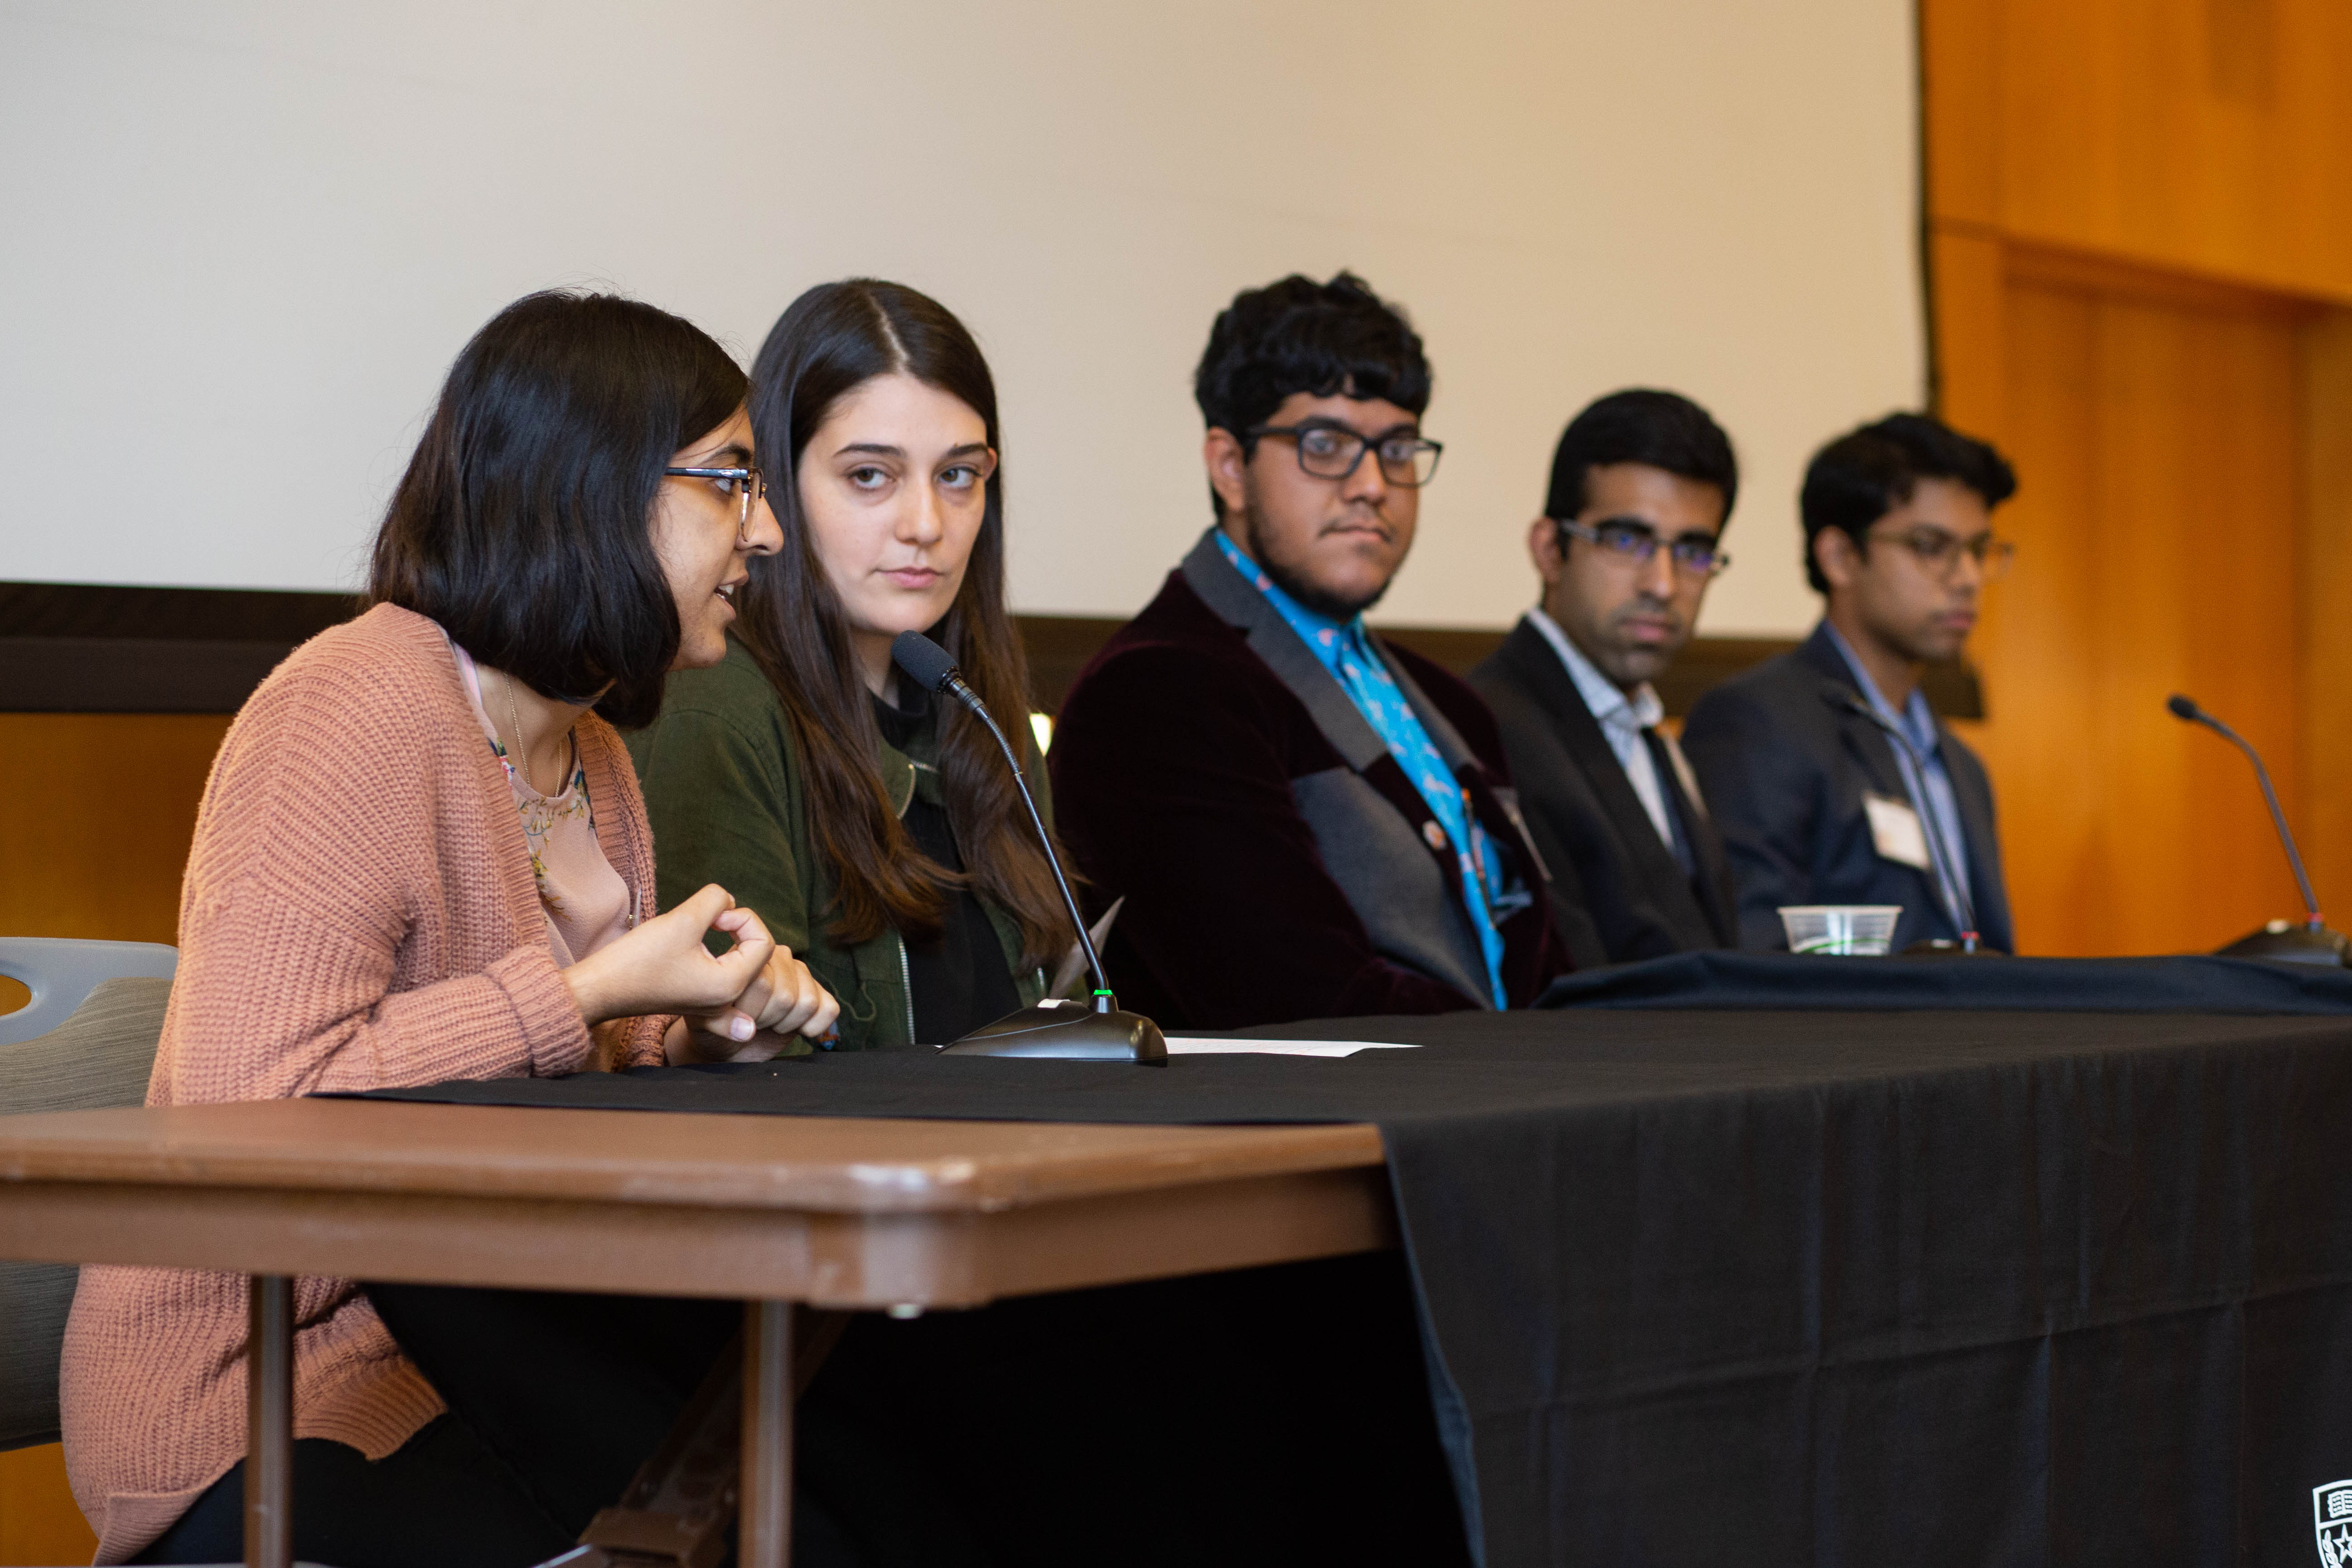 The student panel at the Flags symposium